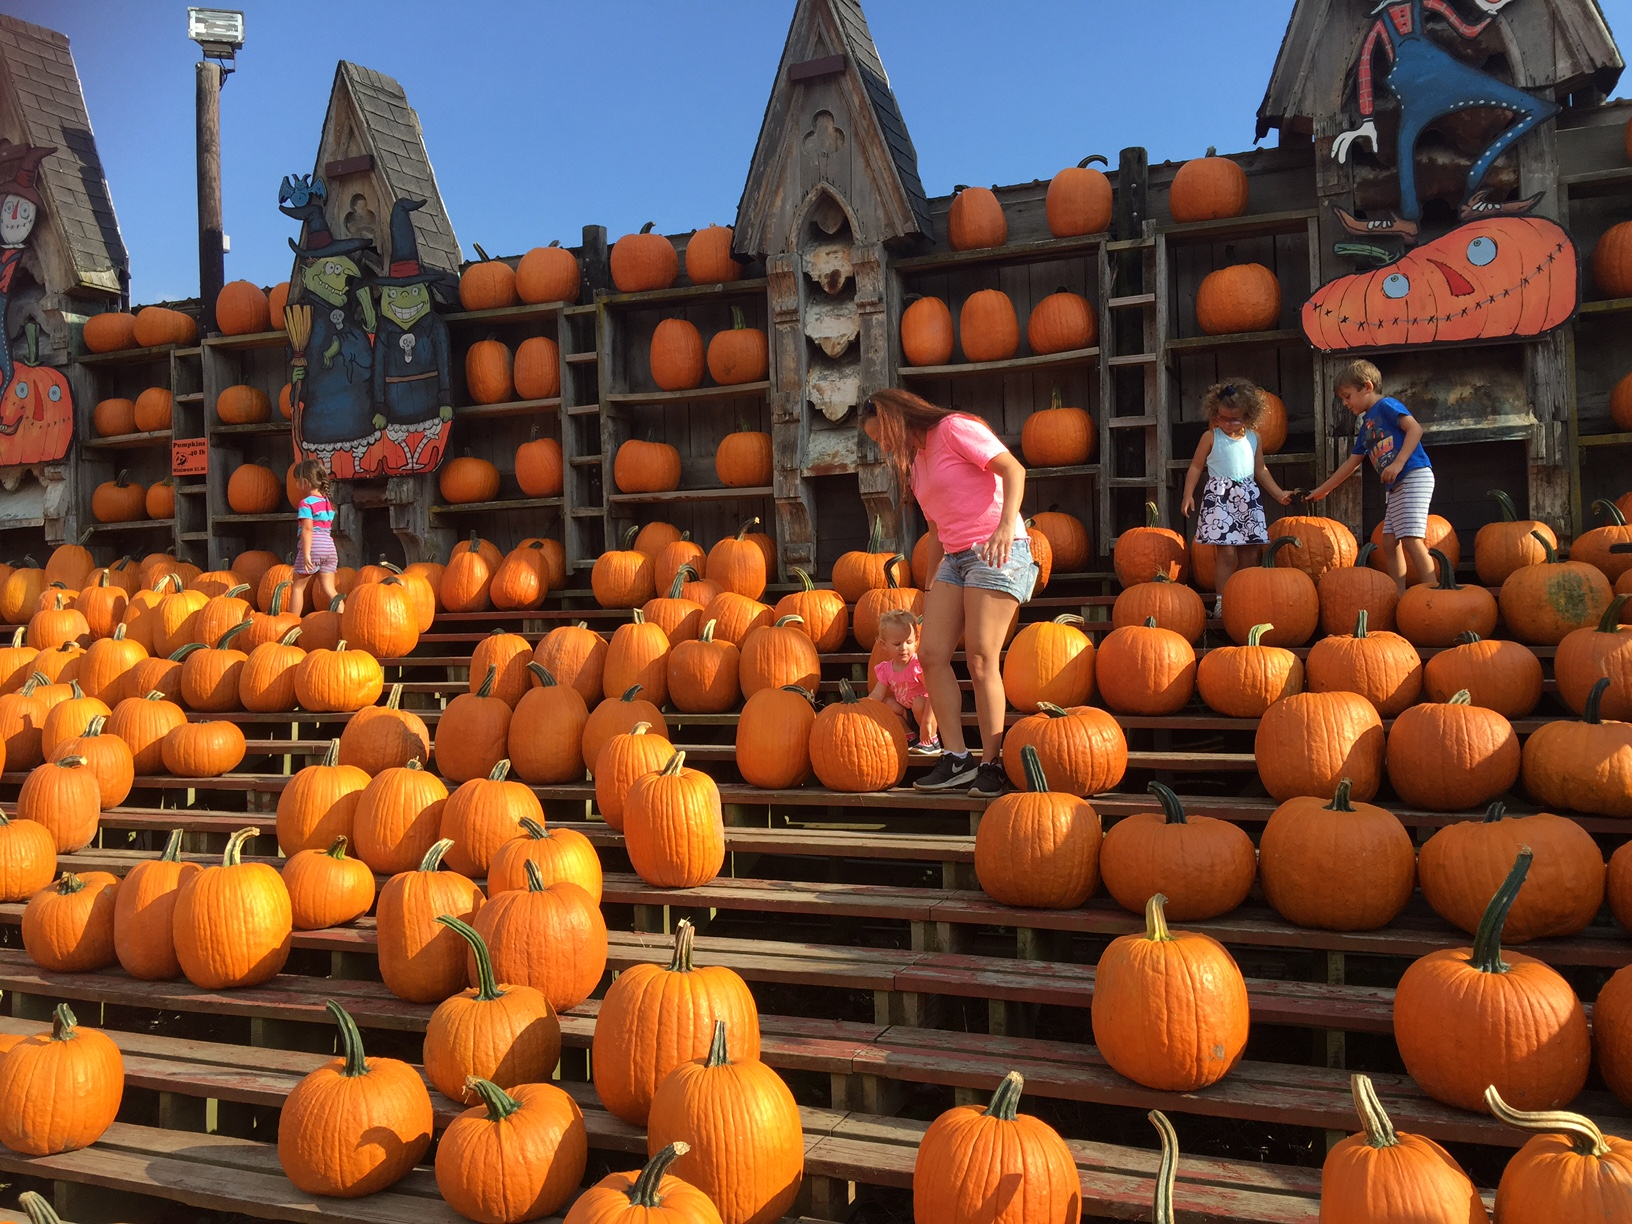 Plenty of pumpkins to buy, too. Mary Friona-Celani/Special to The News